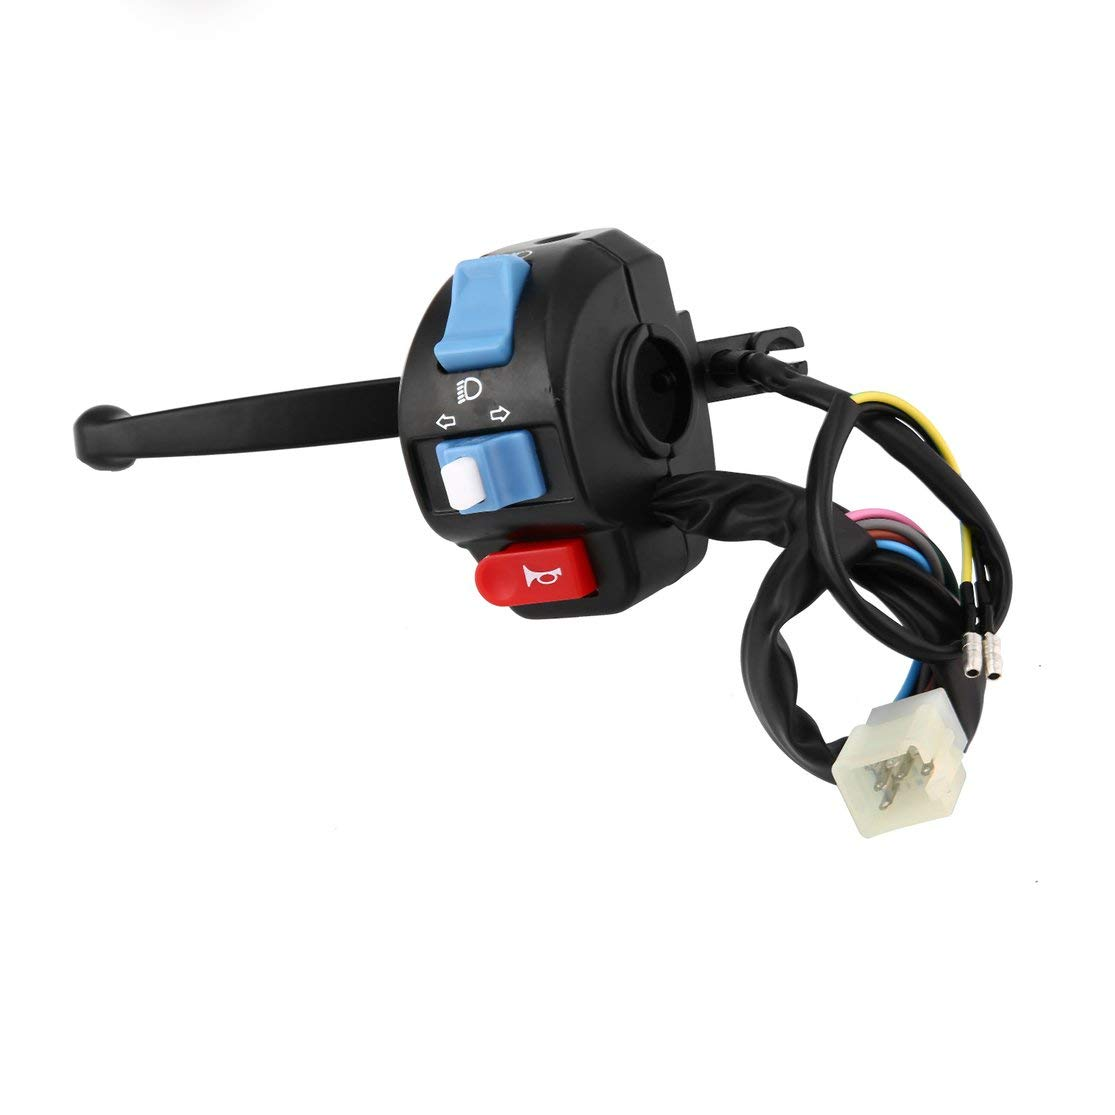 LouiseEvel215 Universal Motorcycle Switchs Black Left Brake Lever Light Switch Control Fit For Scooter Moped GY6 50cc 150